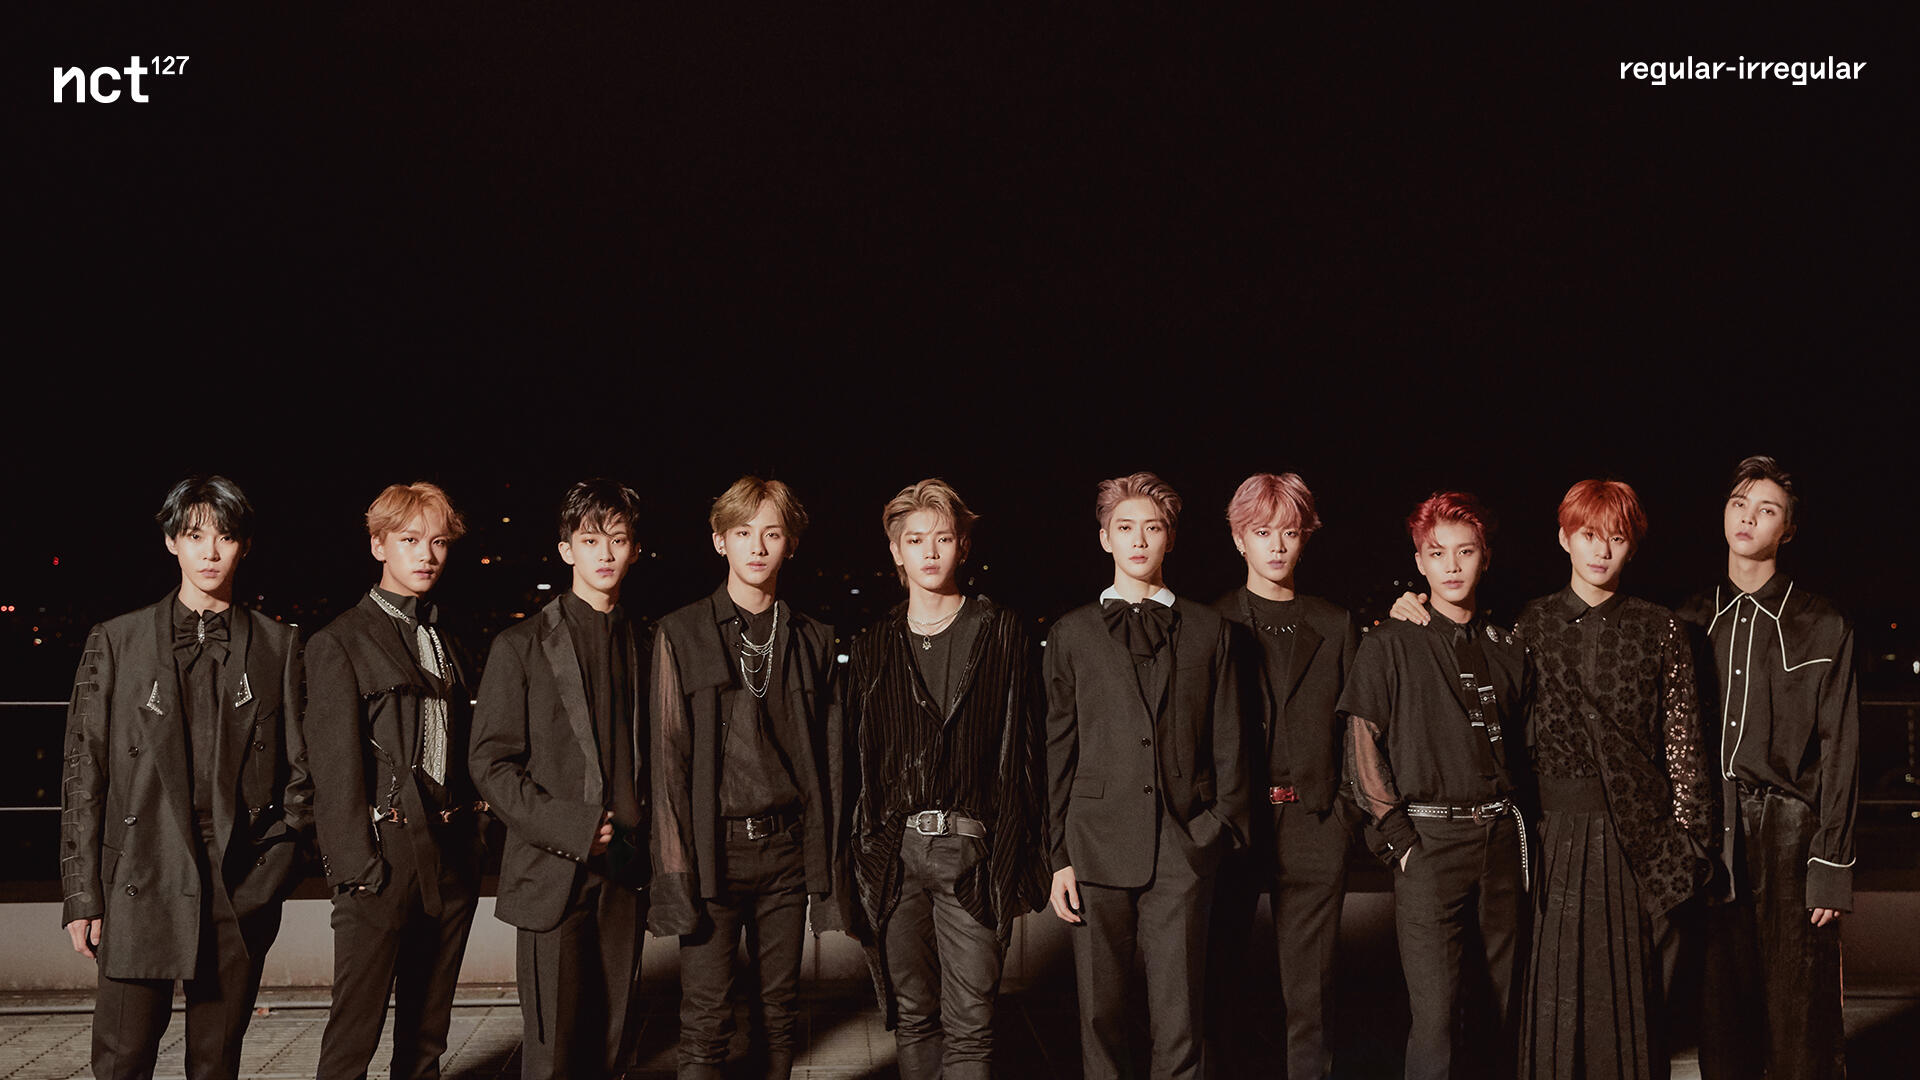 "NCT 127 Dish On Their New Album ""Regular-Irregular"" and More"